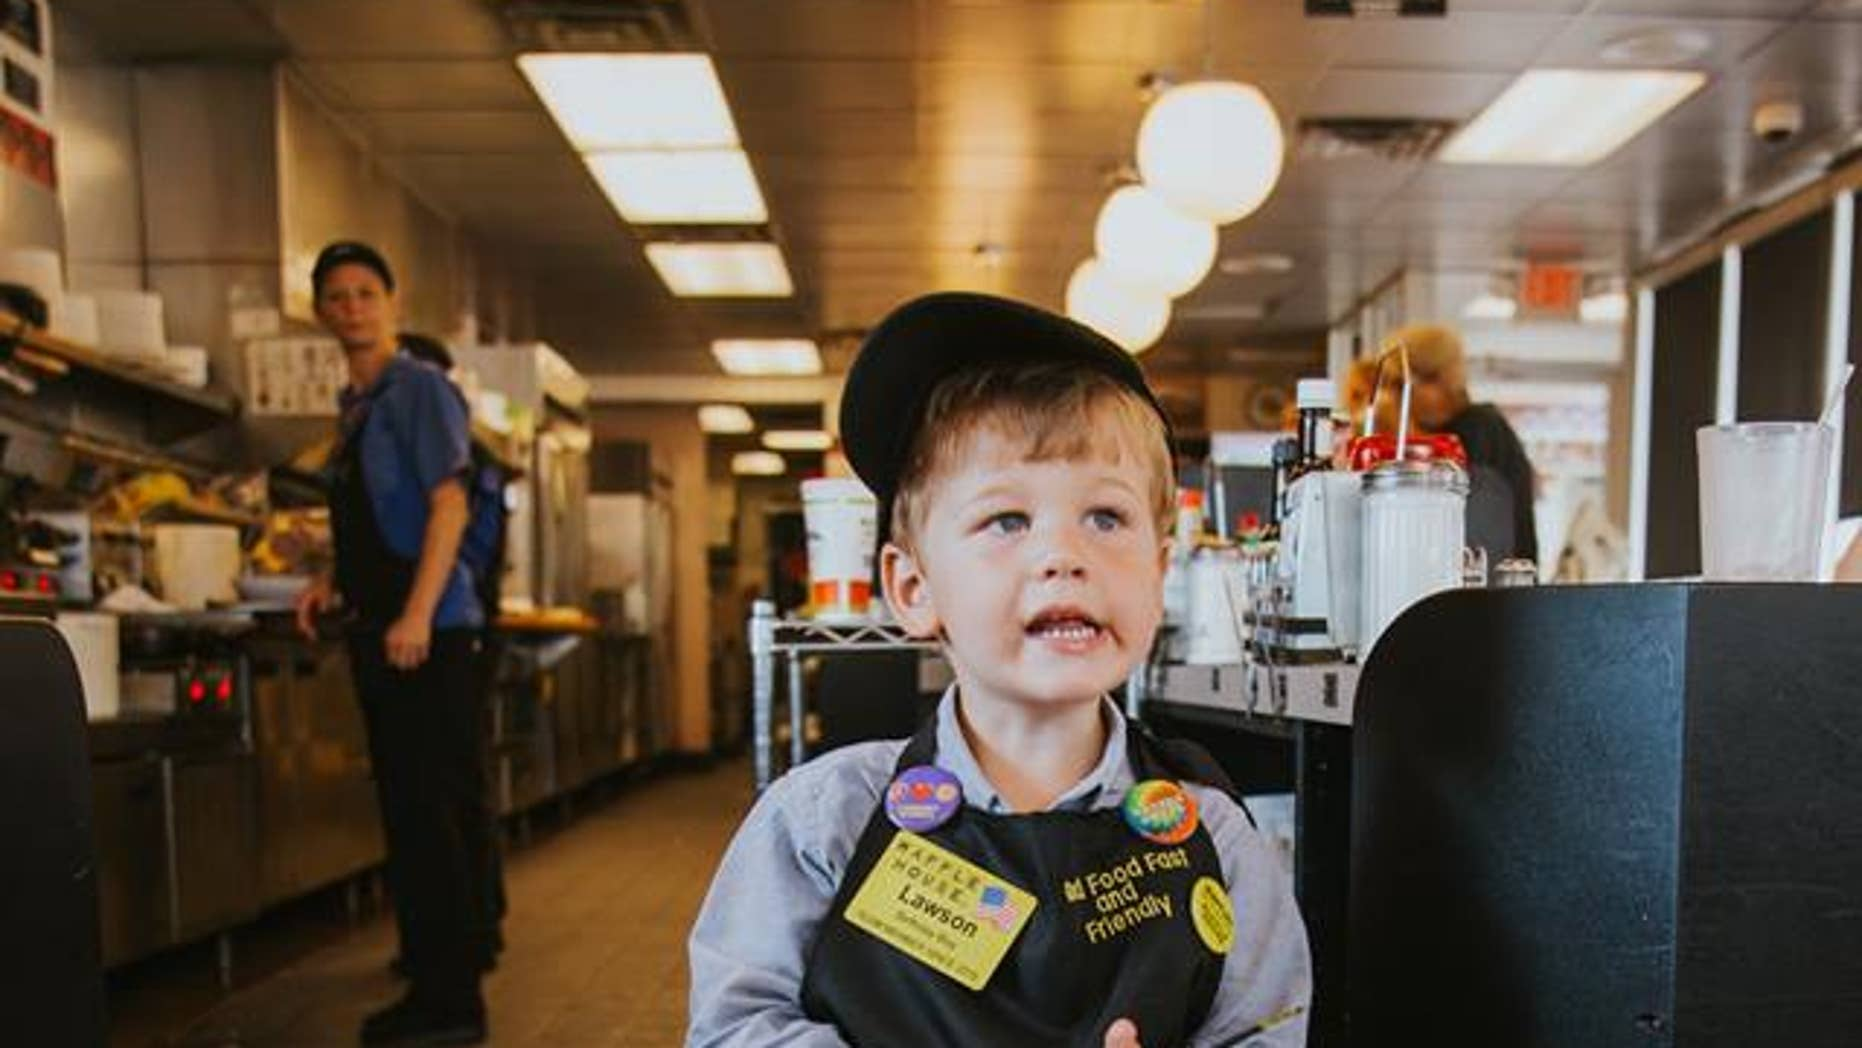 Three-year-old Lawson Cooper loves Waffle House so much, he celebrated his birthday there.